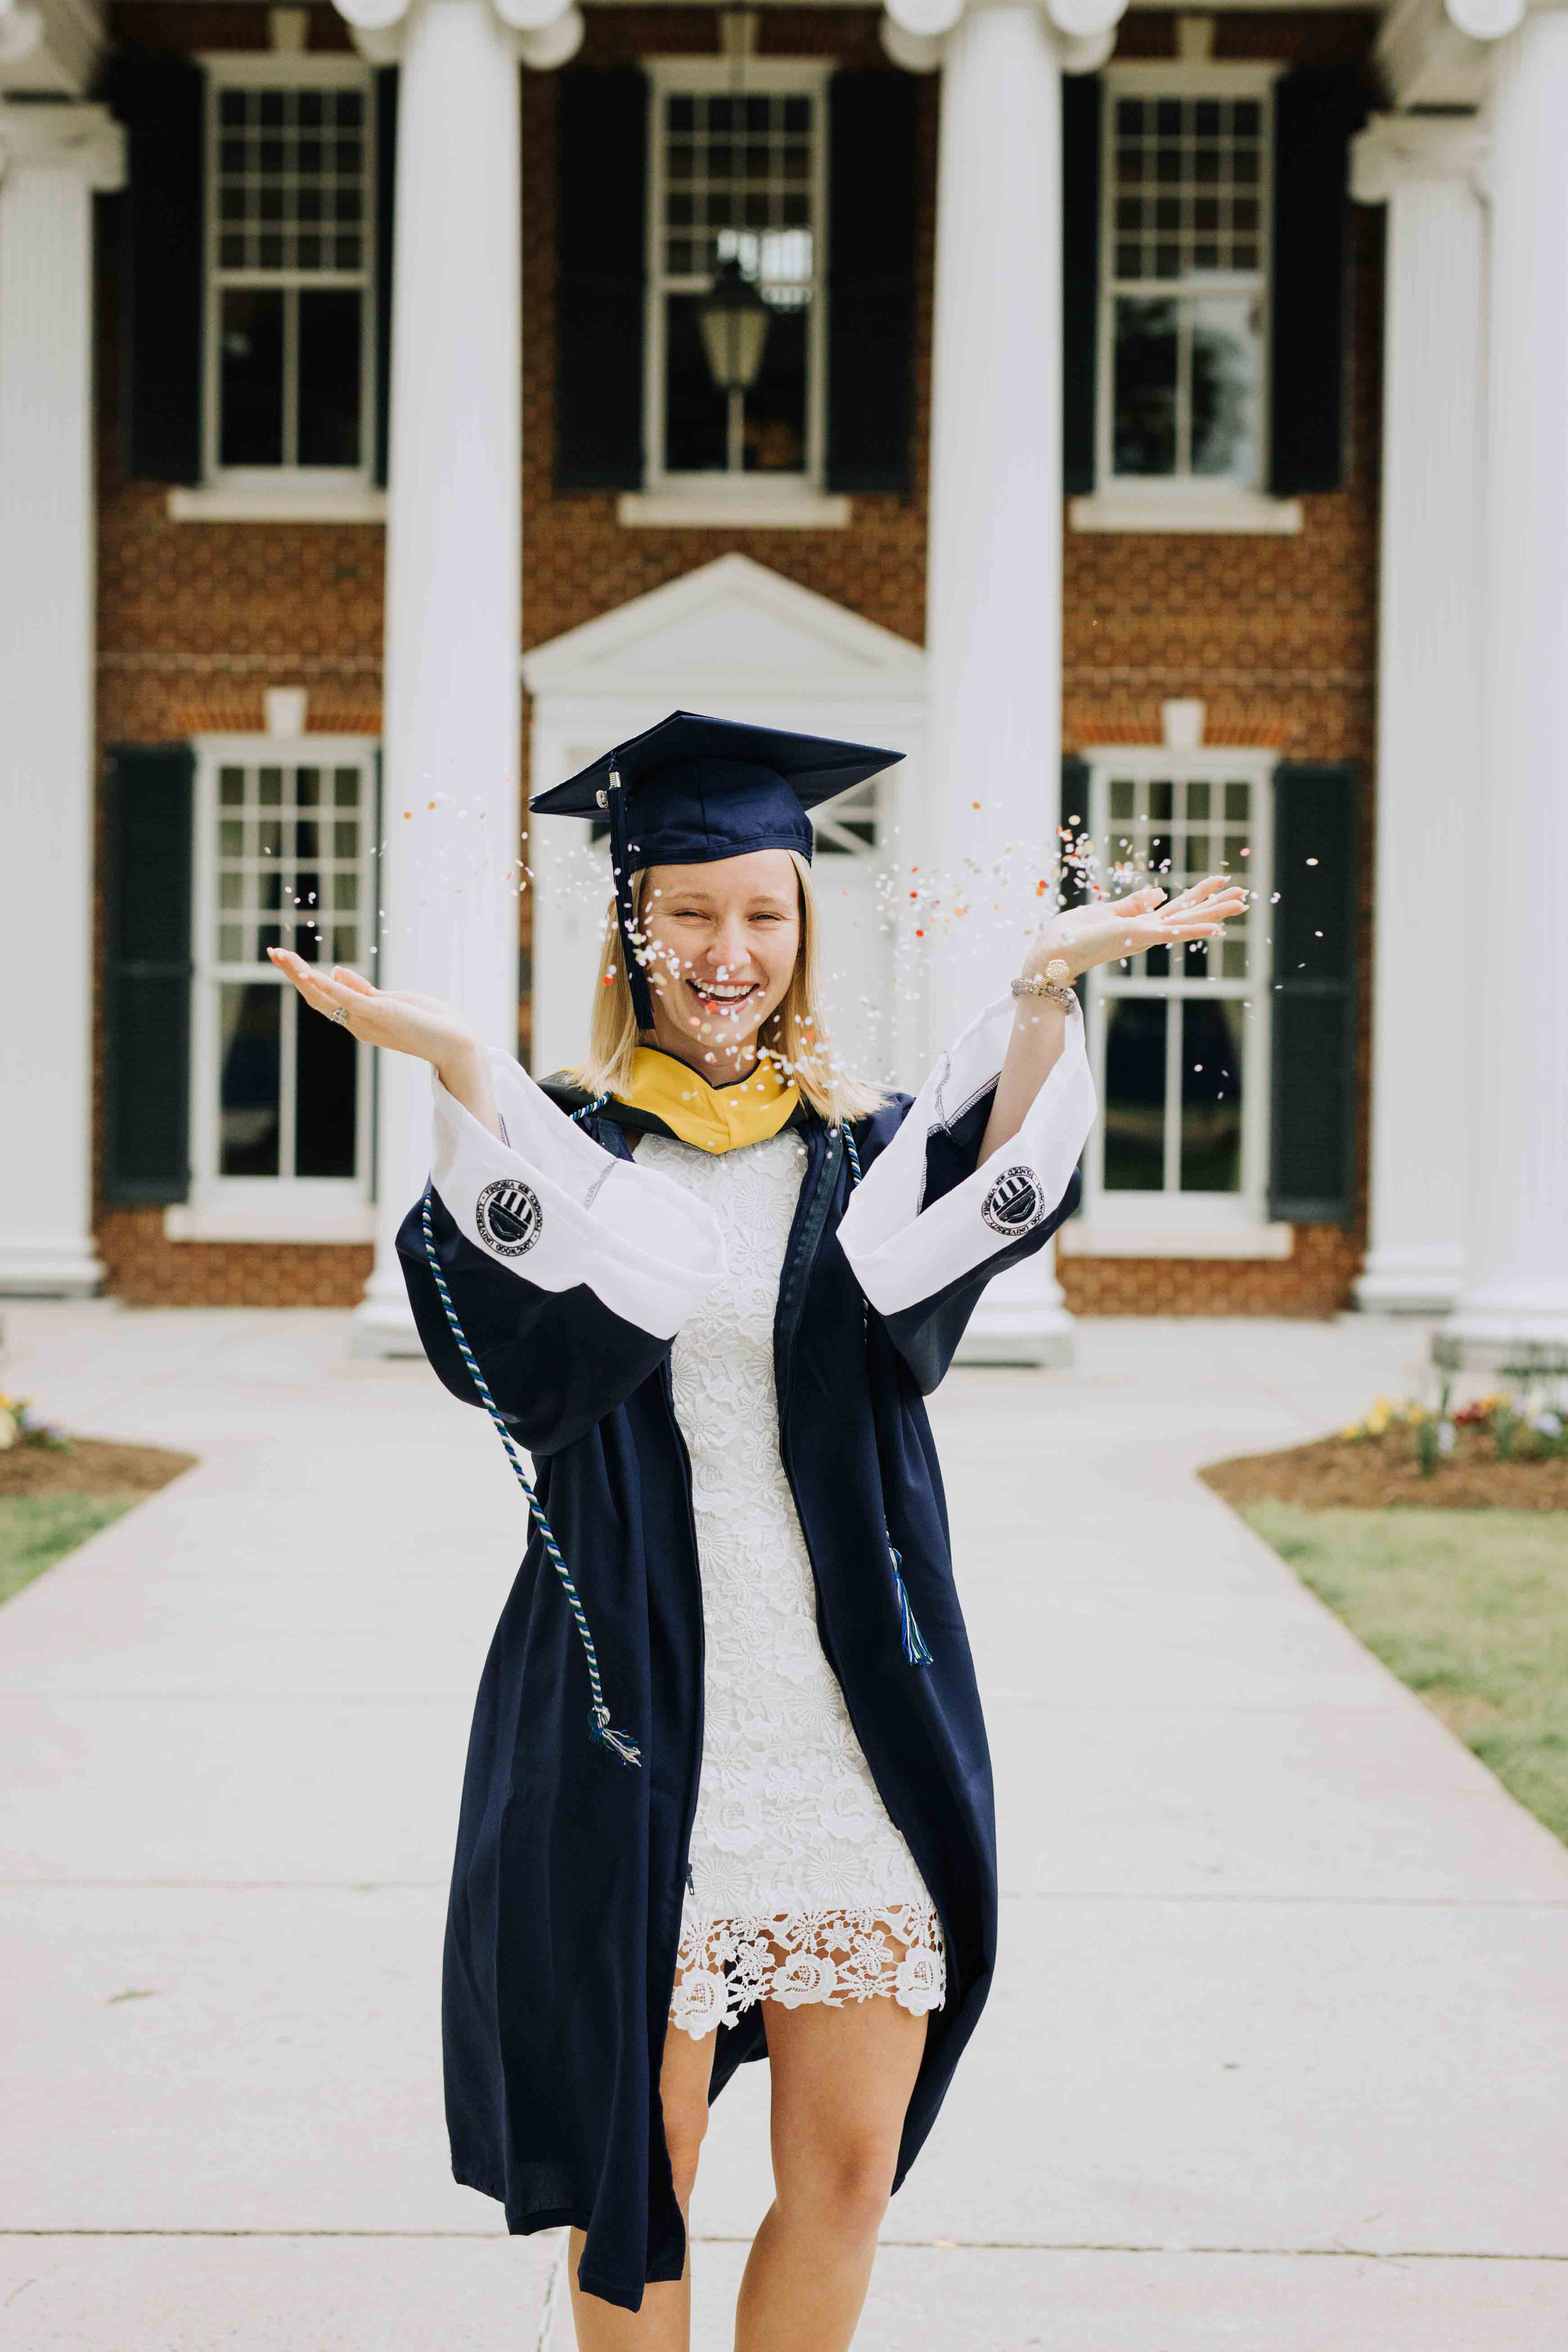 Longwood-Senior-Graduate-Jacqueline-Waters-Photography-Farmville-Virginia- (35).jpg